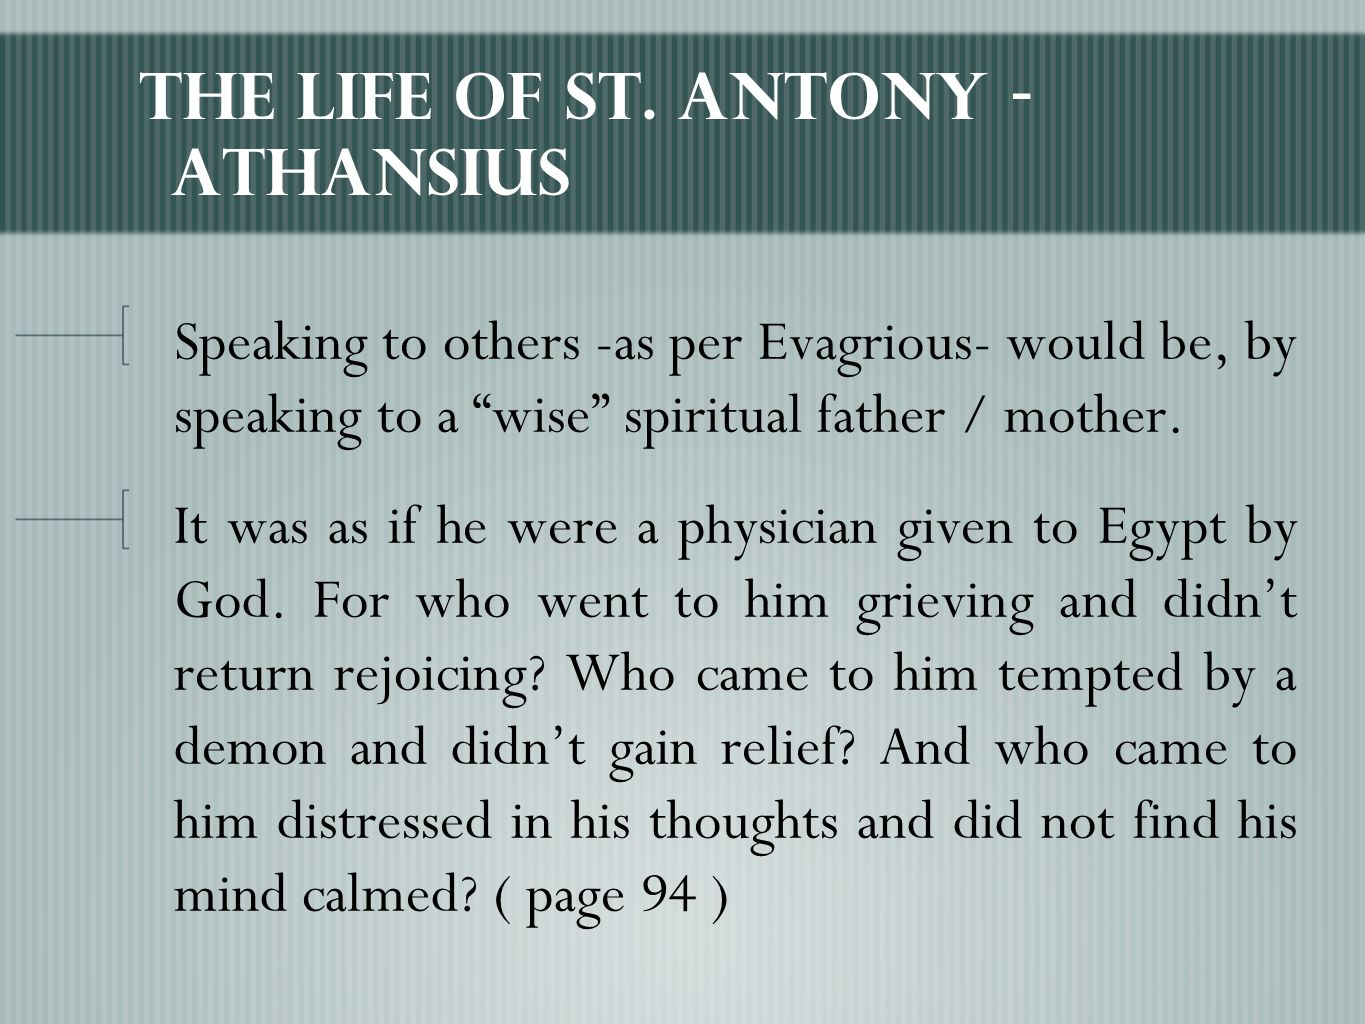 """The Life of St. Antony - Athansius Speaking to others -as per Evagrious- would be, by speaking to a """"wise"""" spiritual father / mother. It was as if he"""